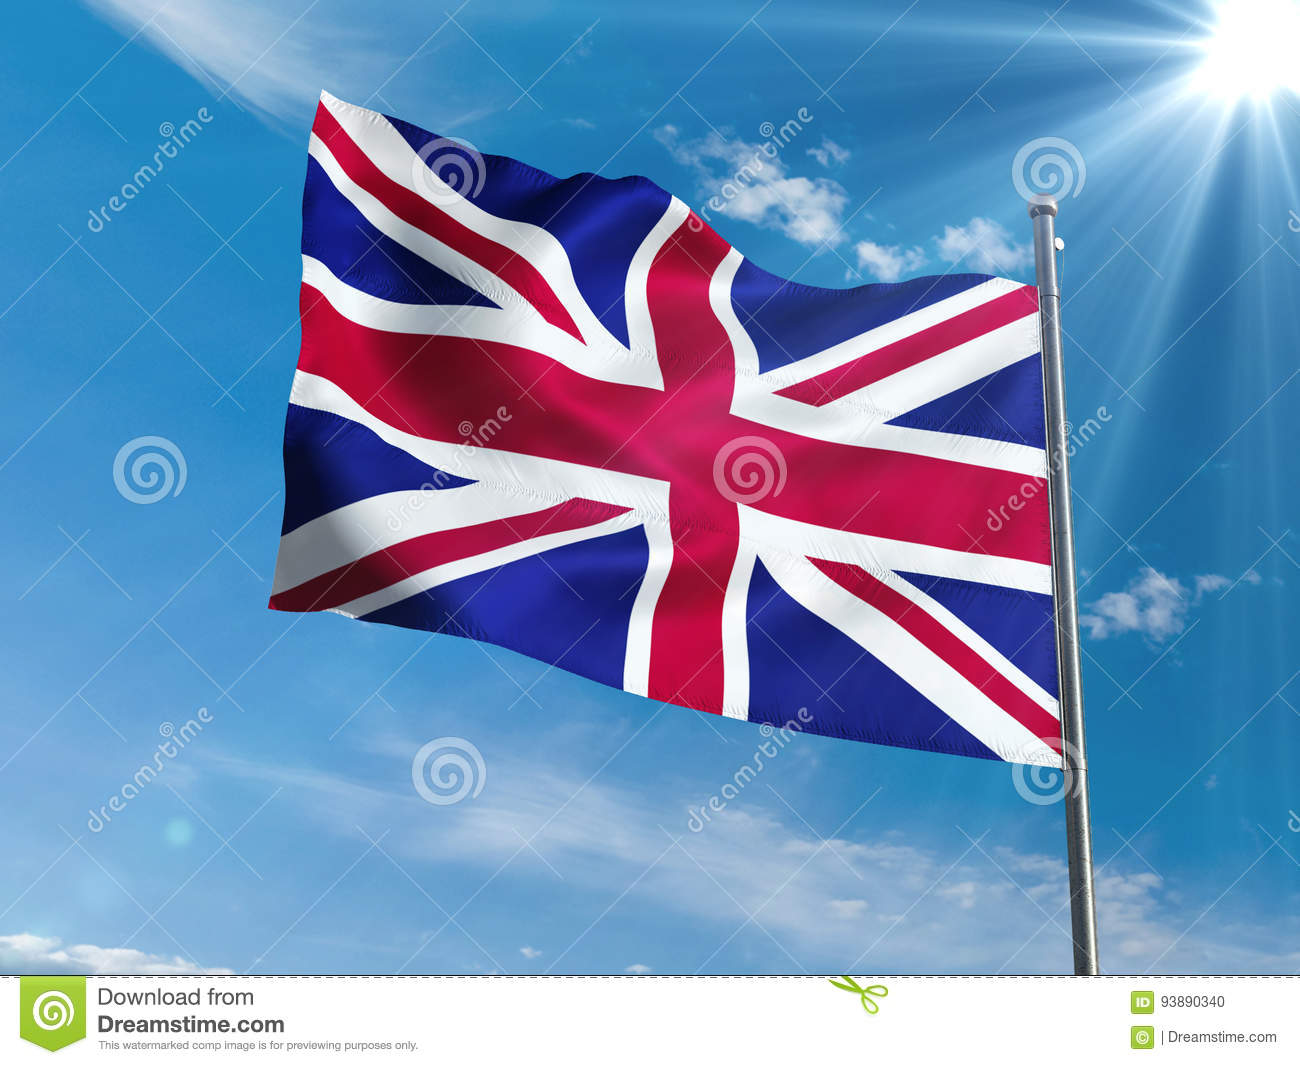 British flag waving in blue sky with sun